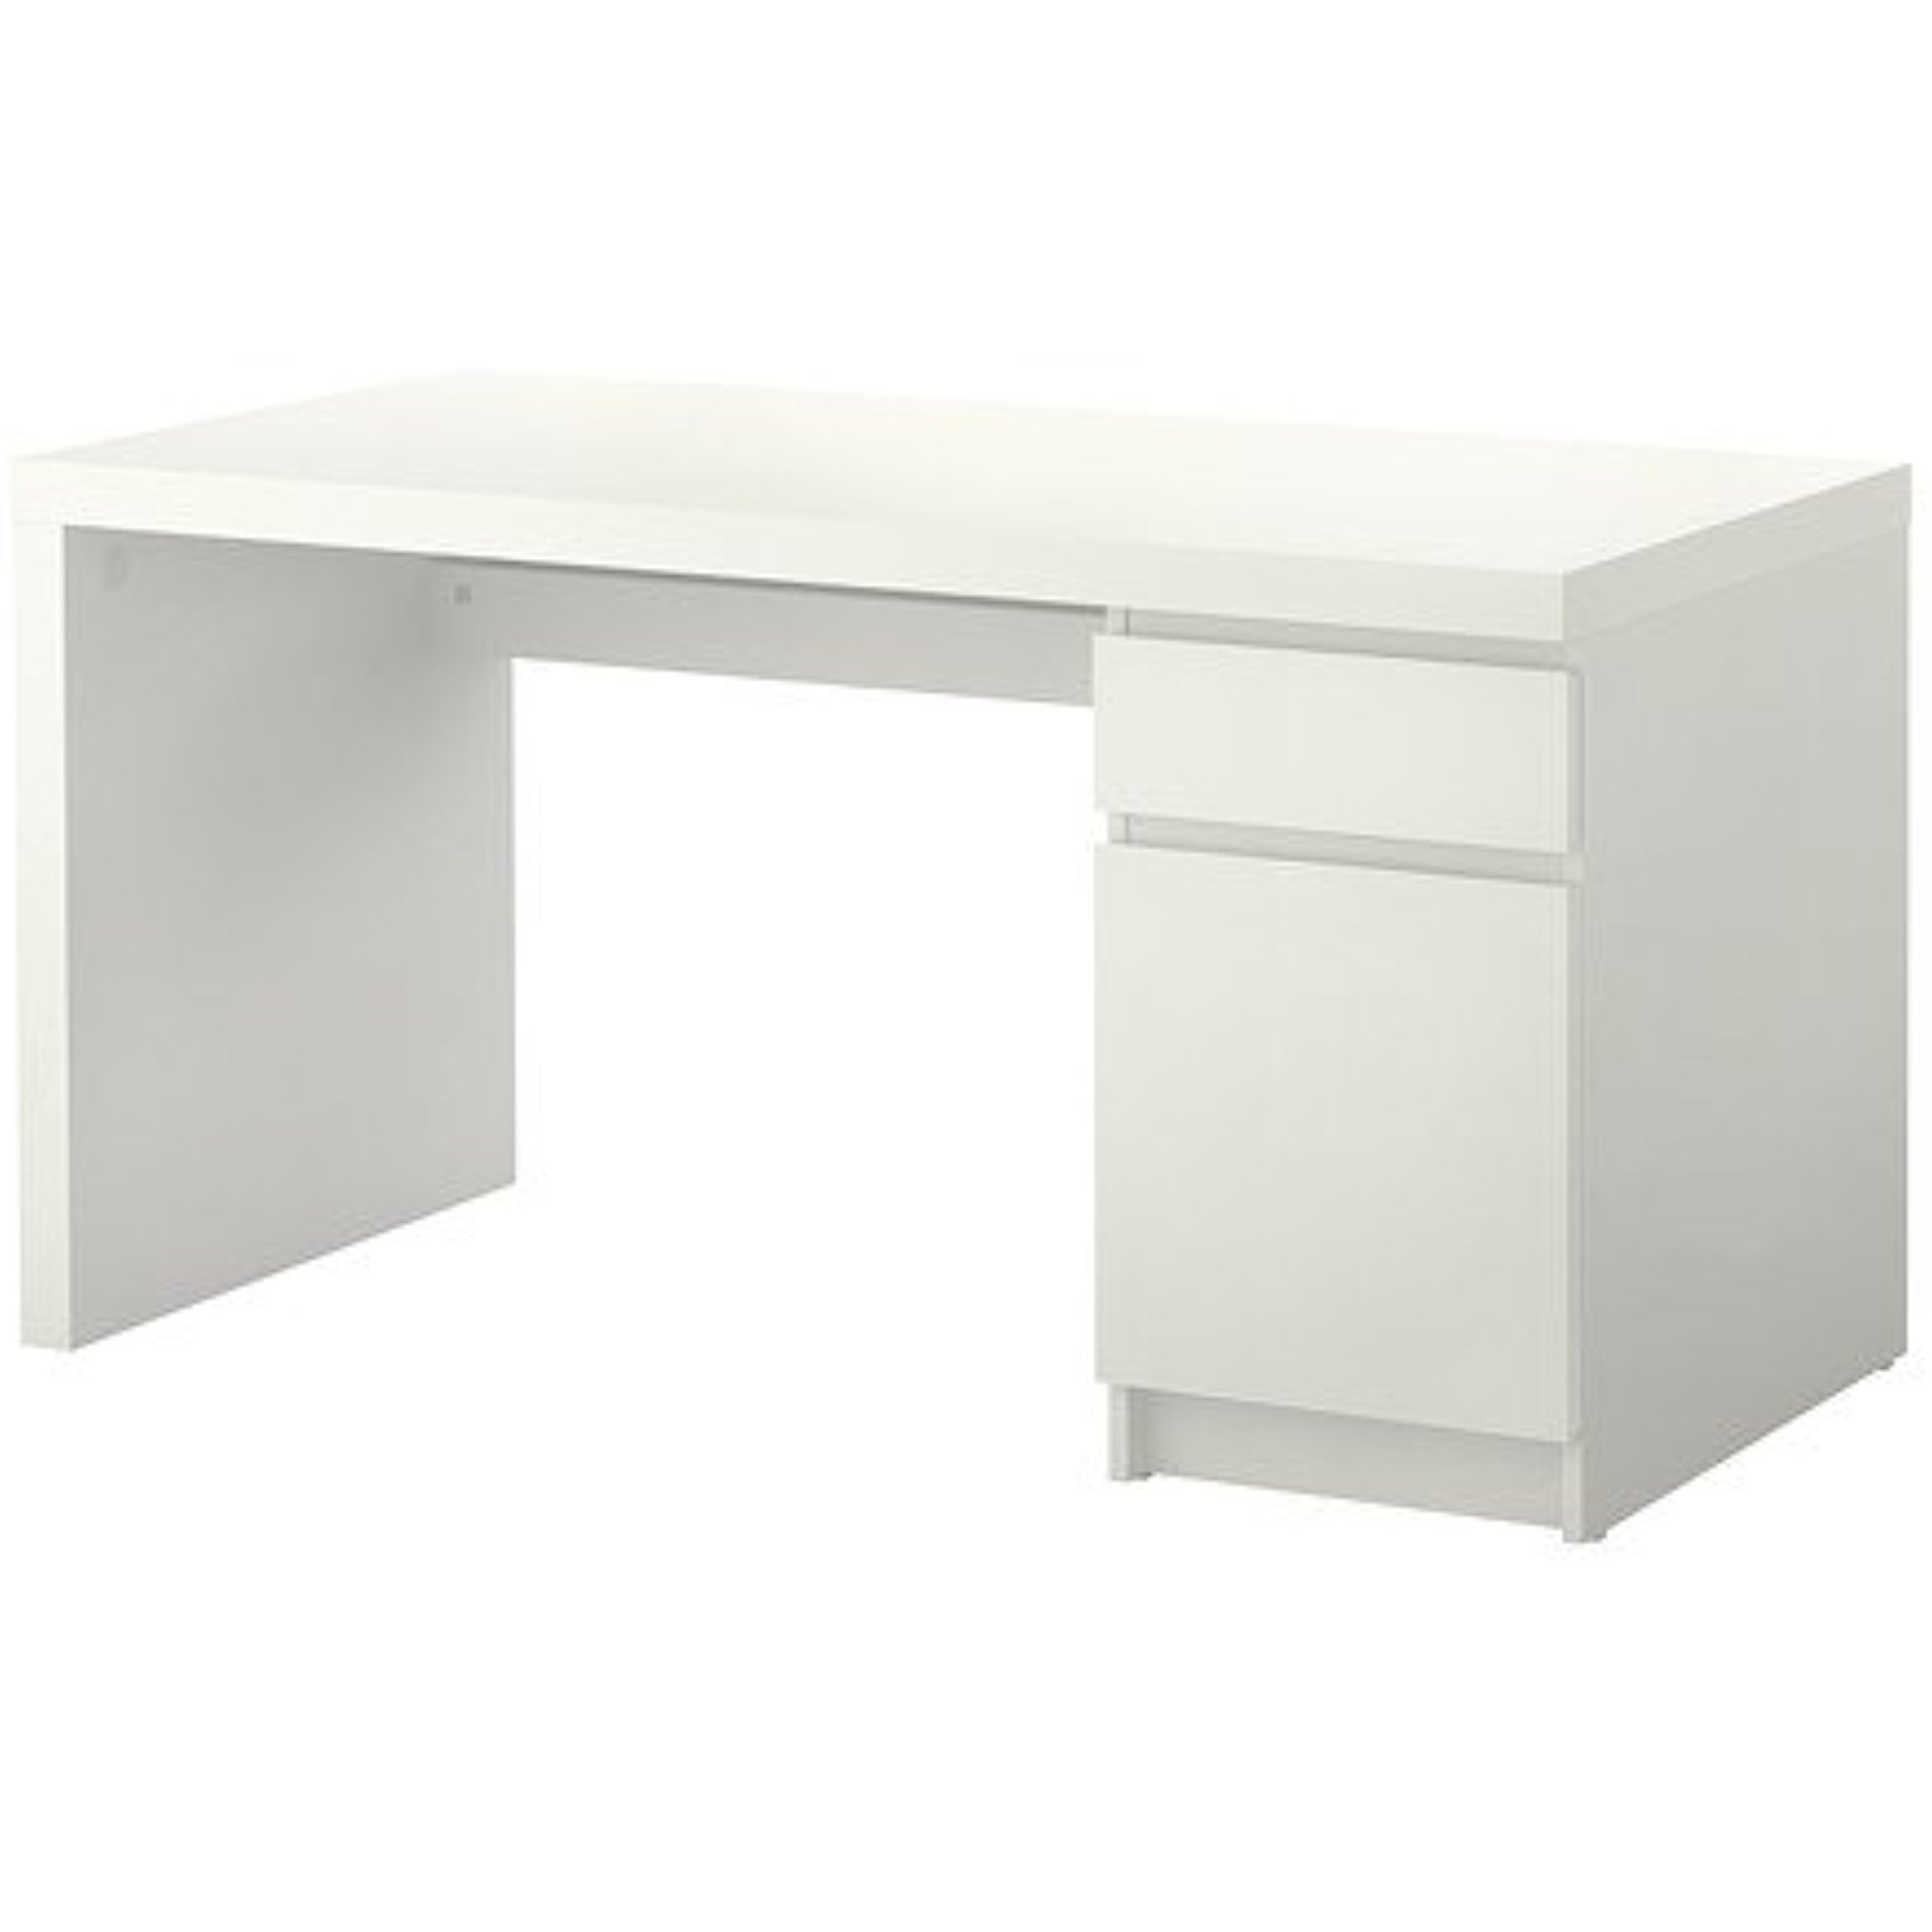 Ikea Desk, White 26210.5145.1220